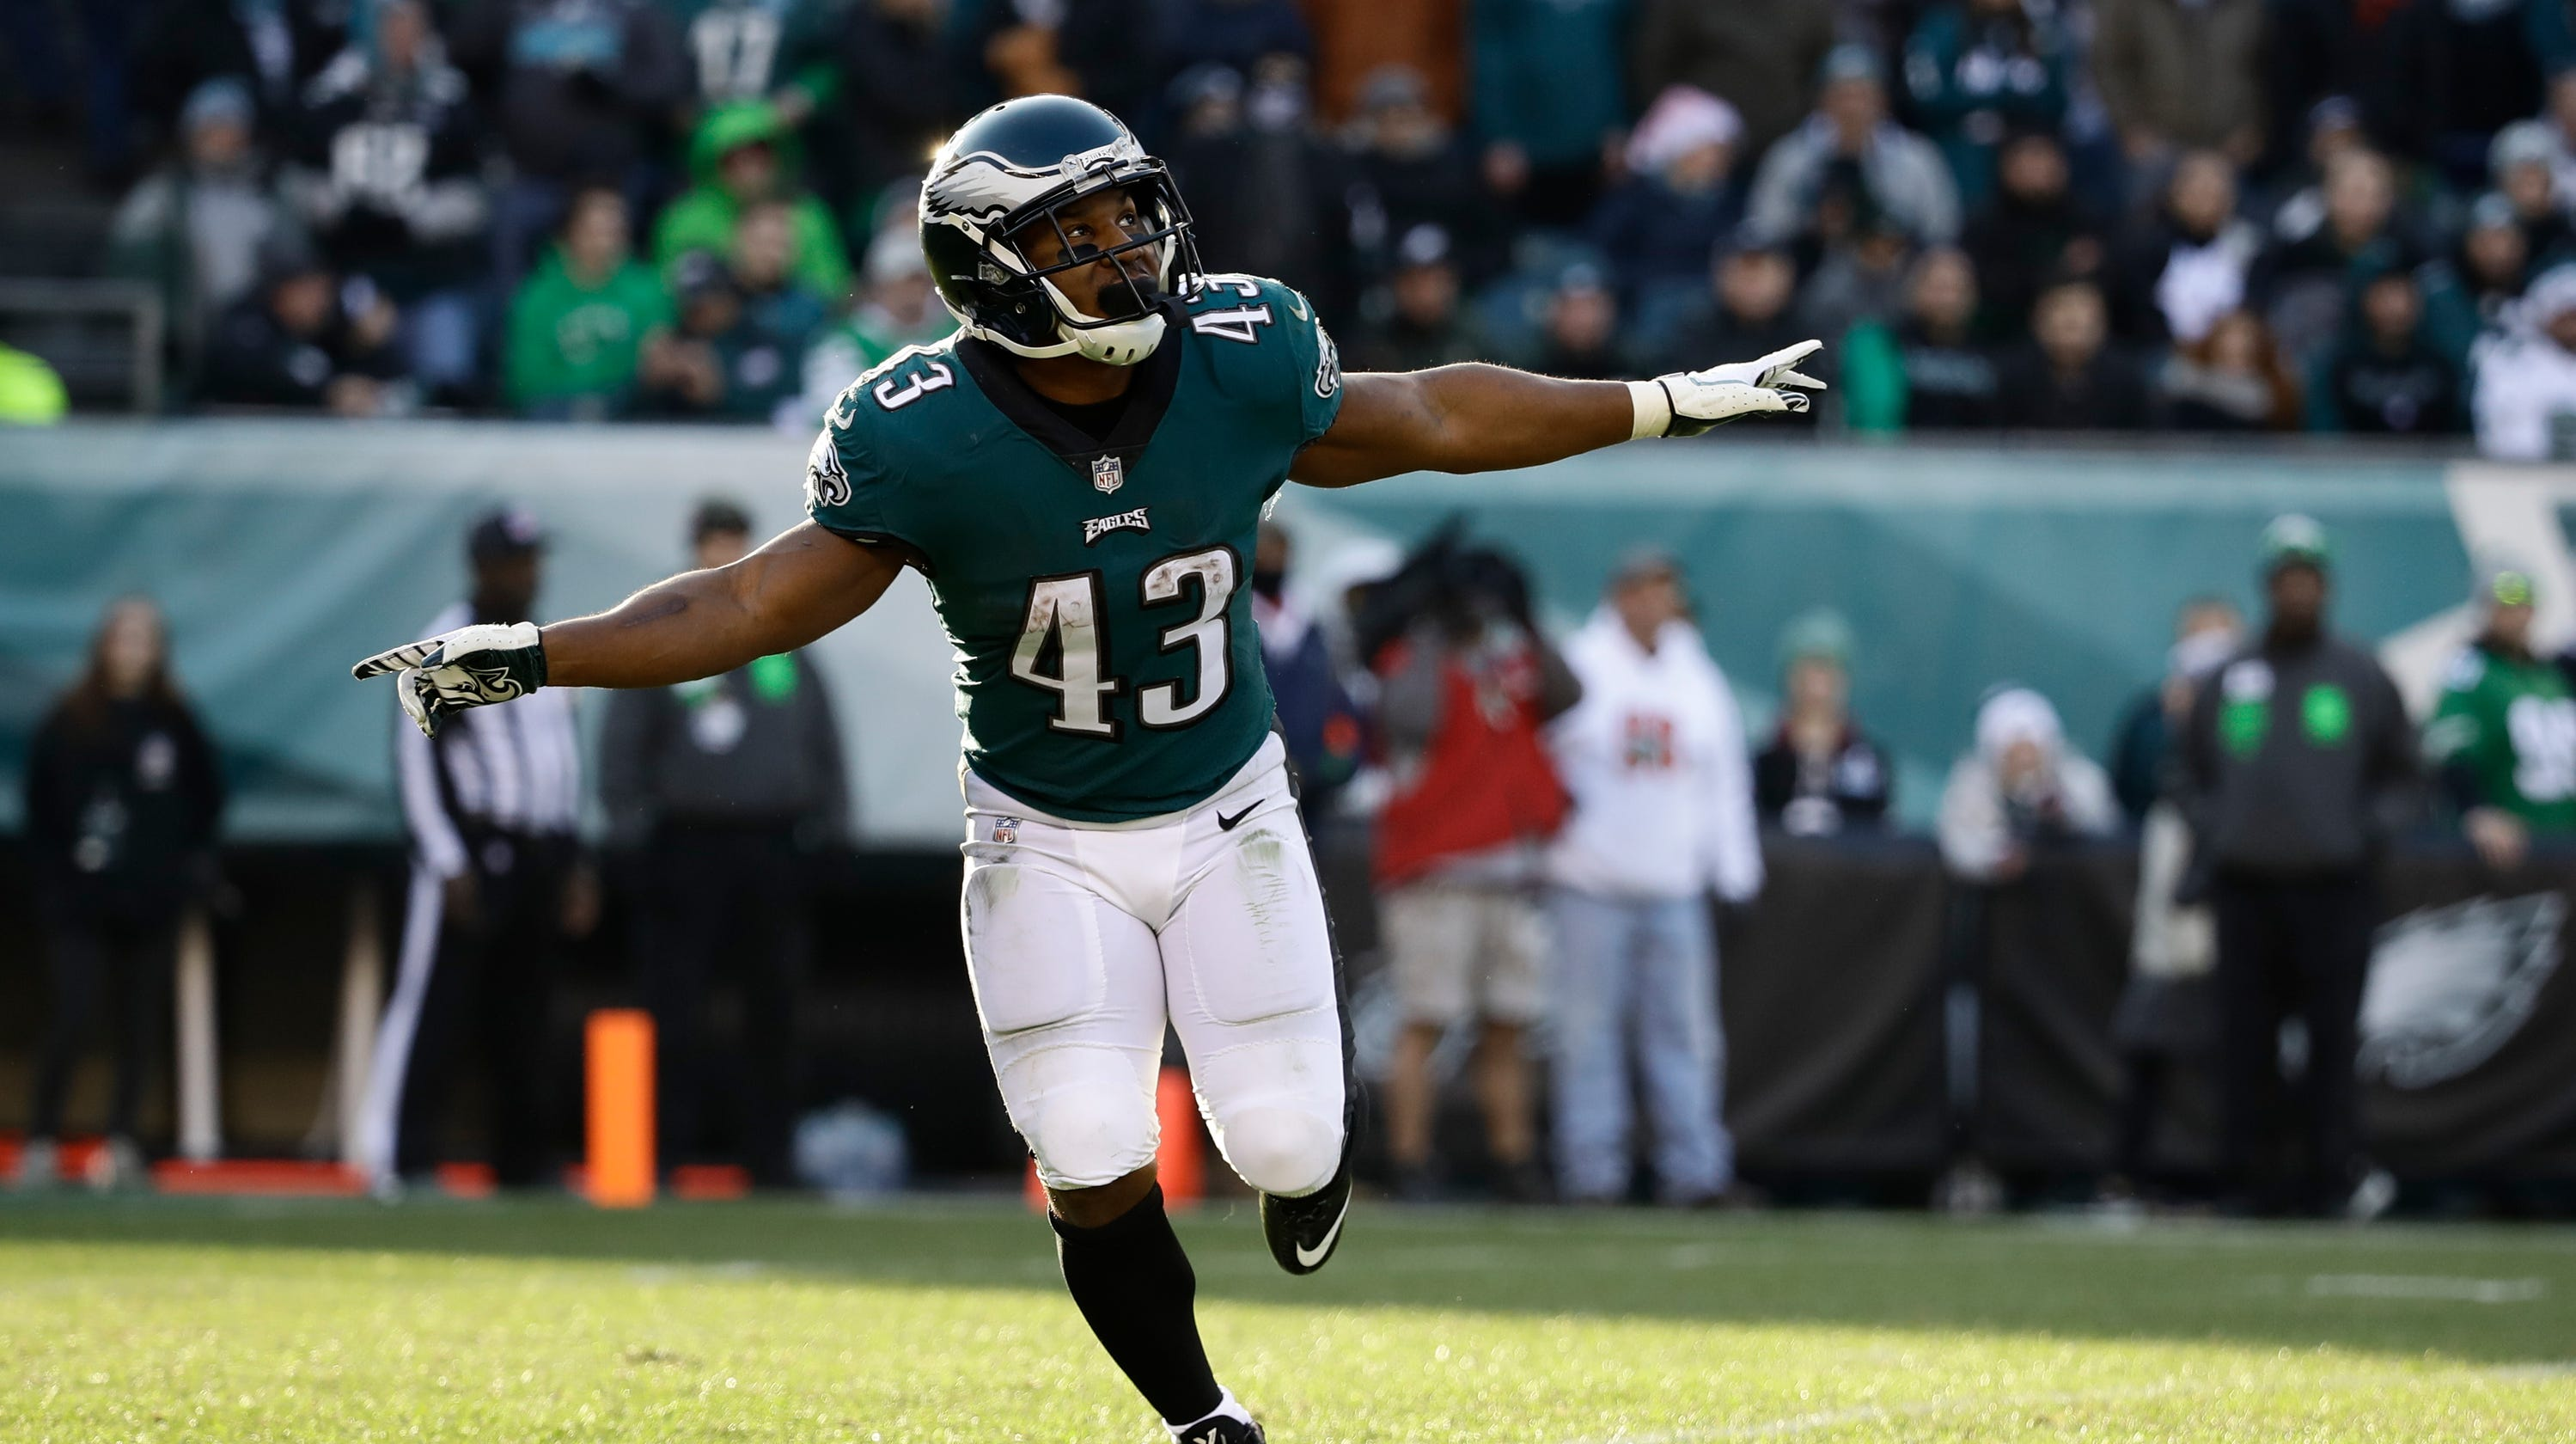 Eagles  playoff push fueled by 4 unheralded stars and Pederson s ... d25a0908b